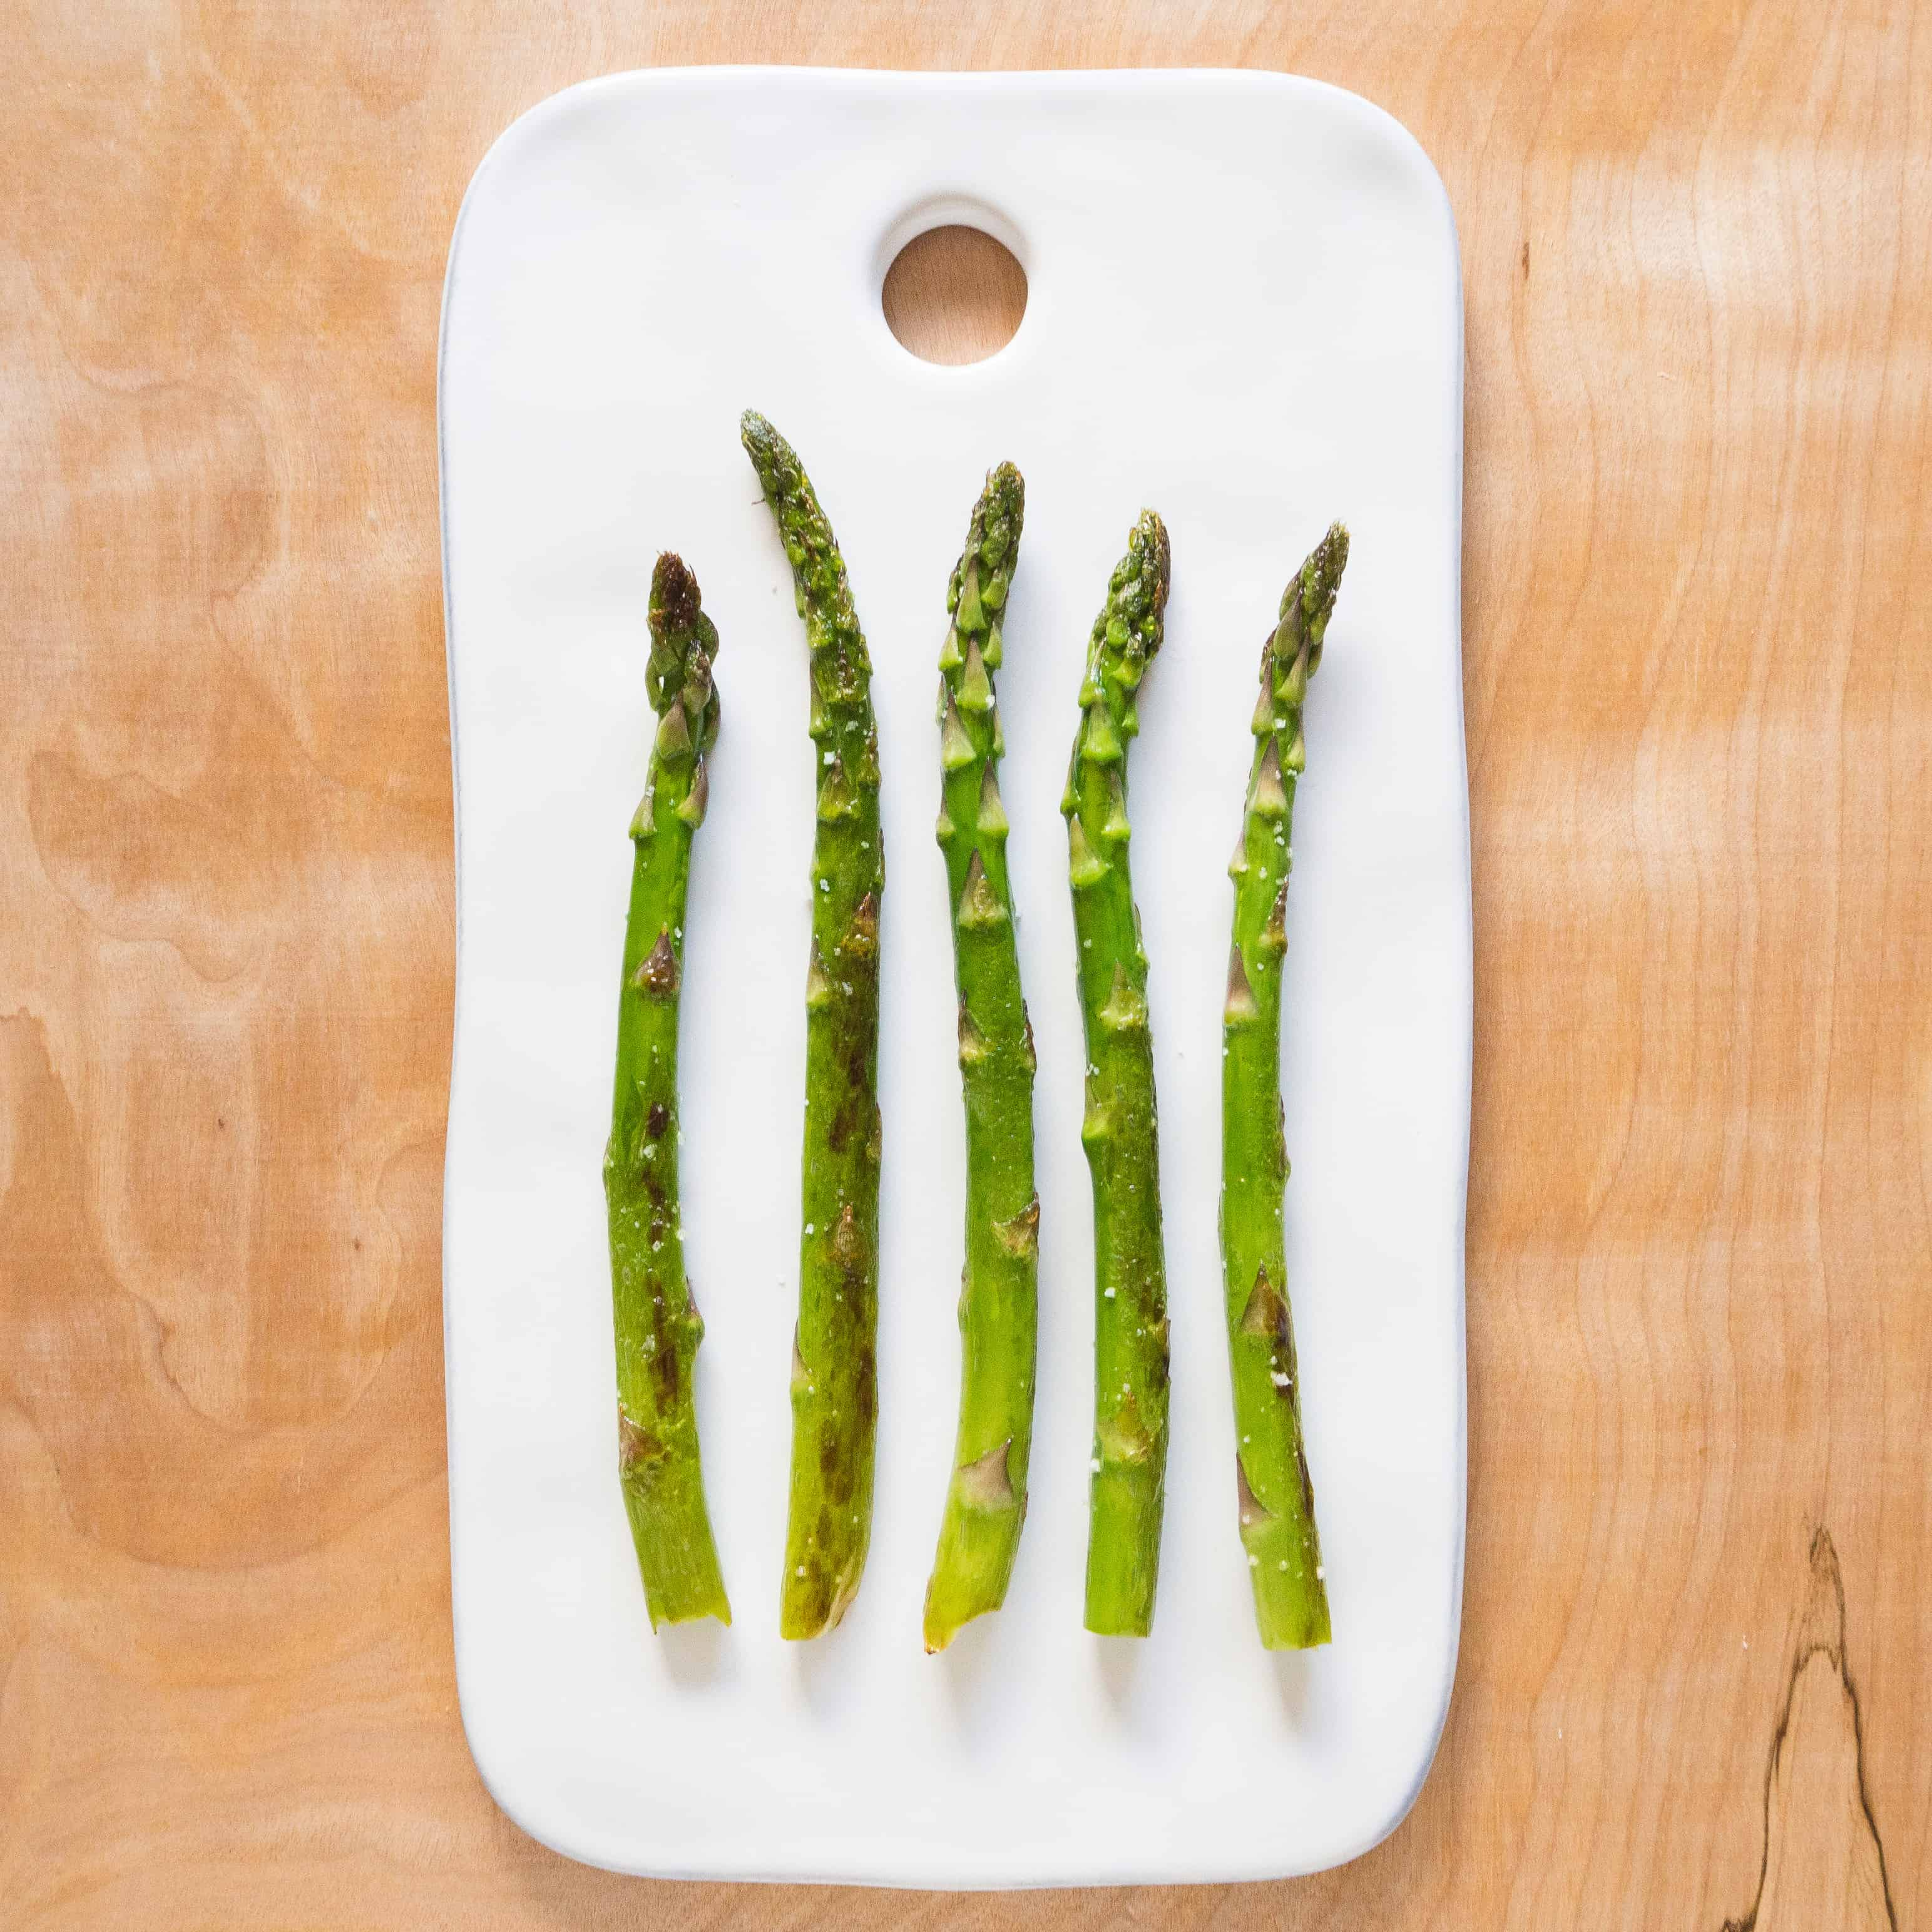 Pan Fried Asparagus with Olive Oil and Lemon